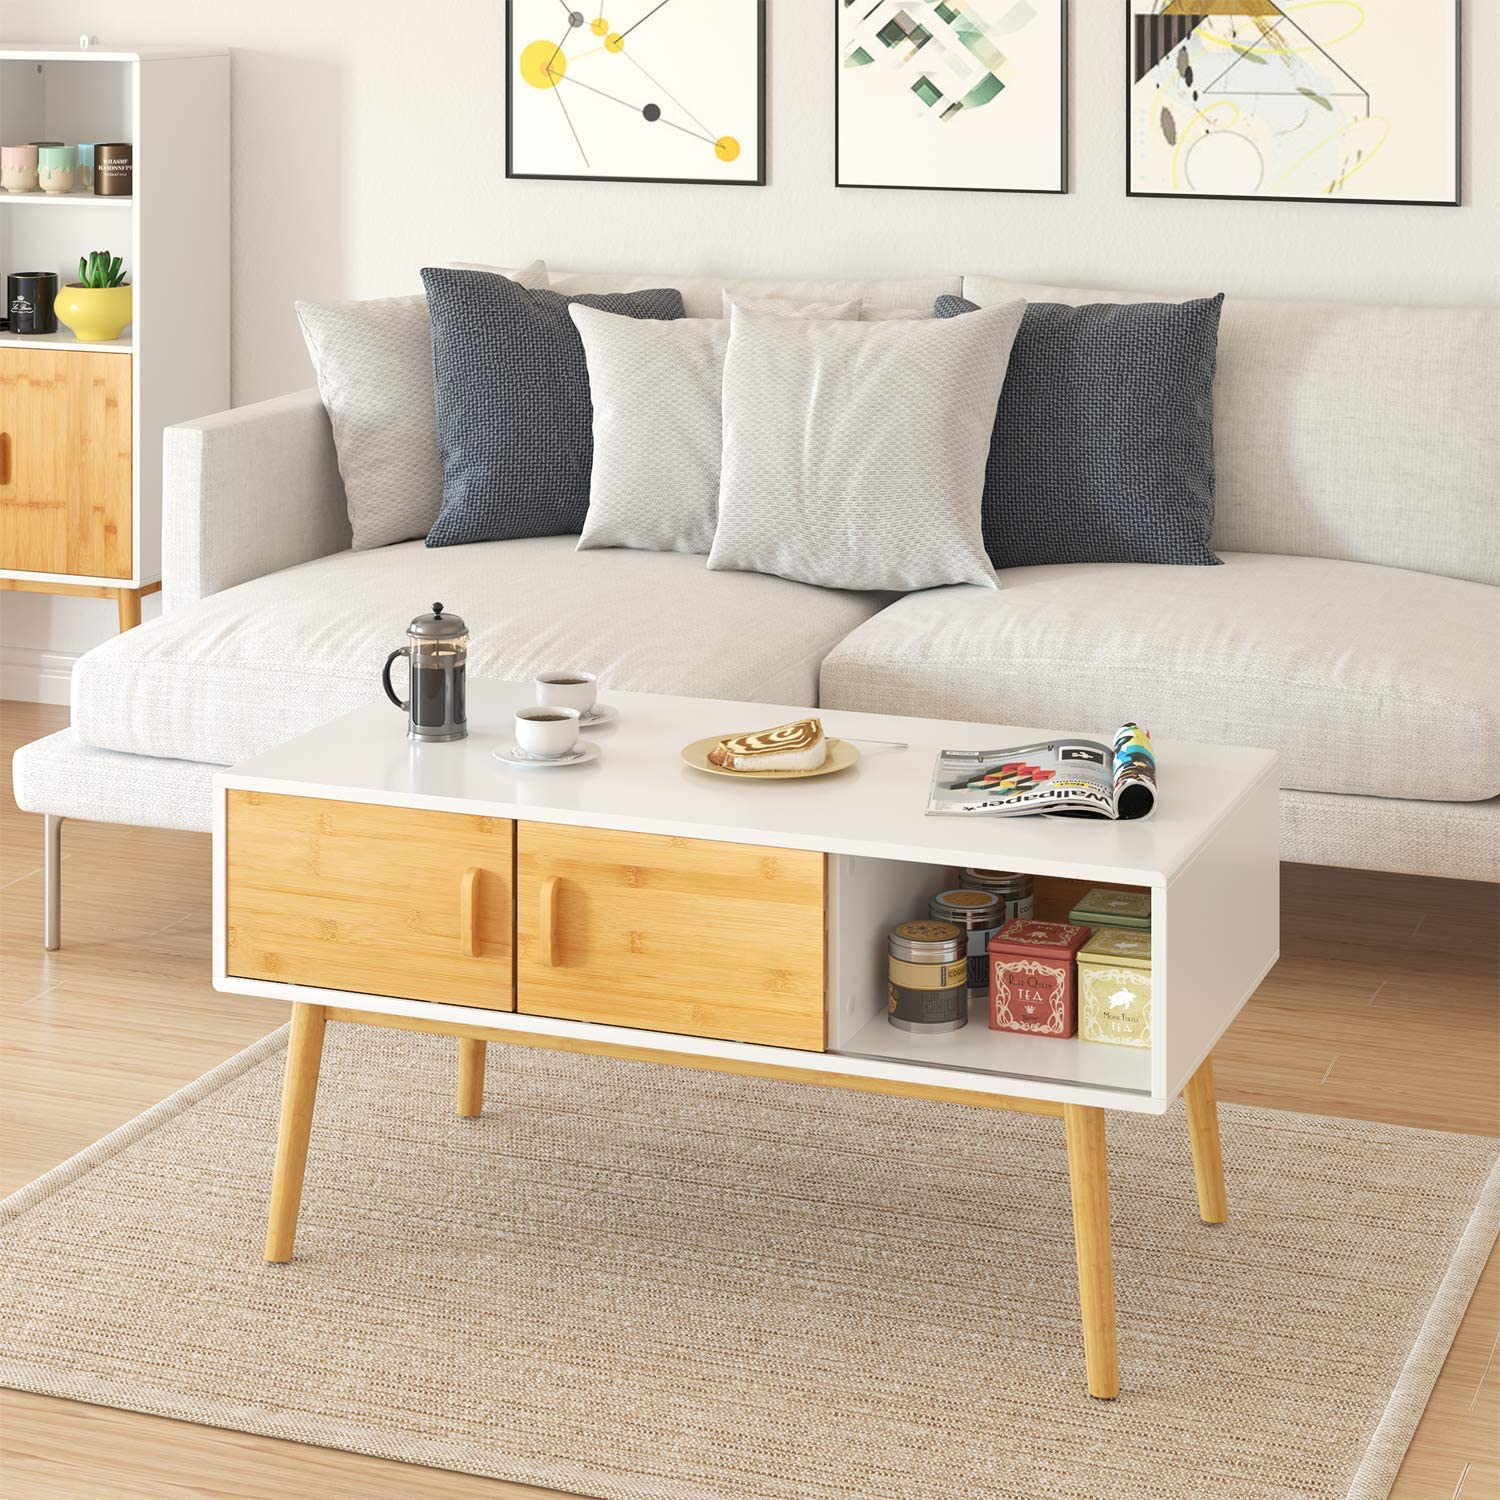 HOMECHO Coffee Table with 4 Bamboo Sliding Doors to Adjusted 3 Storage Shelf Cabinets Living Room Organize Cocktail Table TV Table Sofa Desk Center Table Wood Mid Century Modern White Home Office